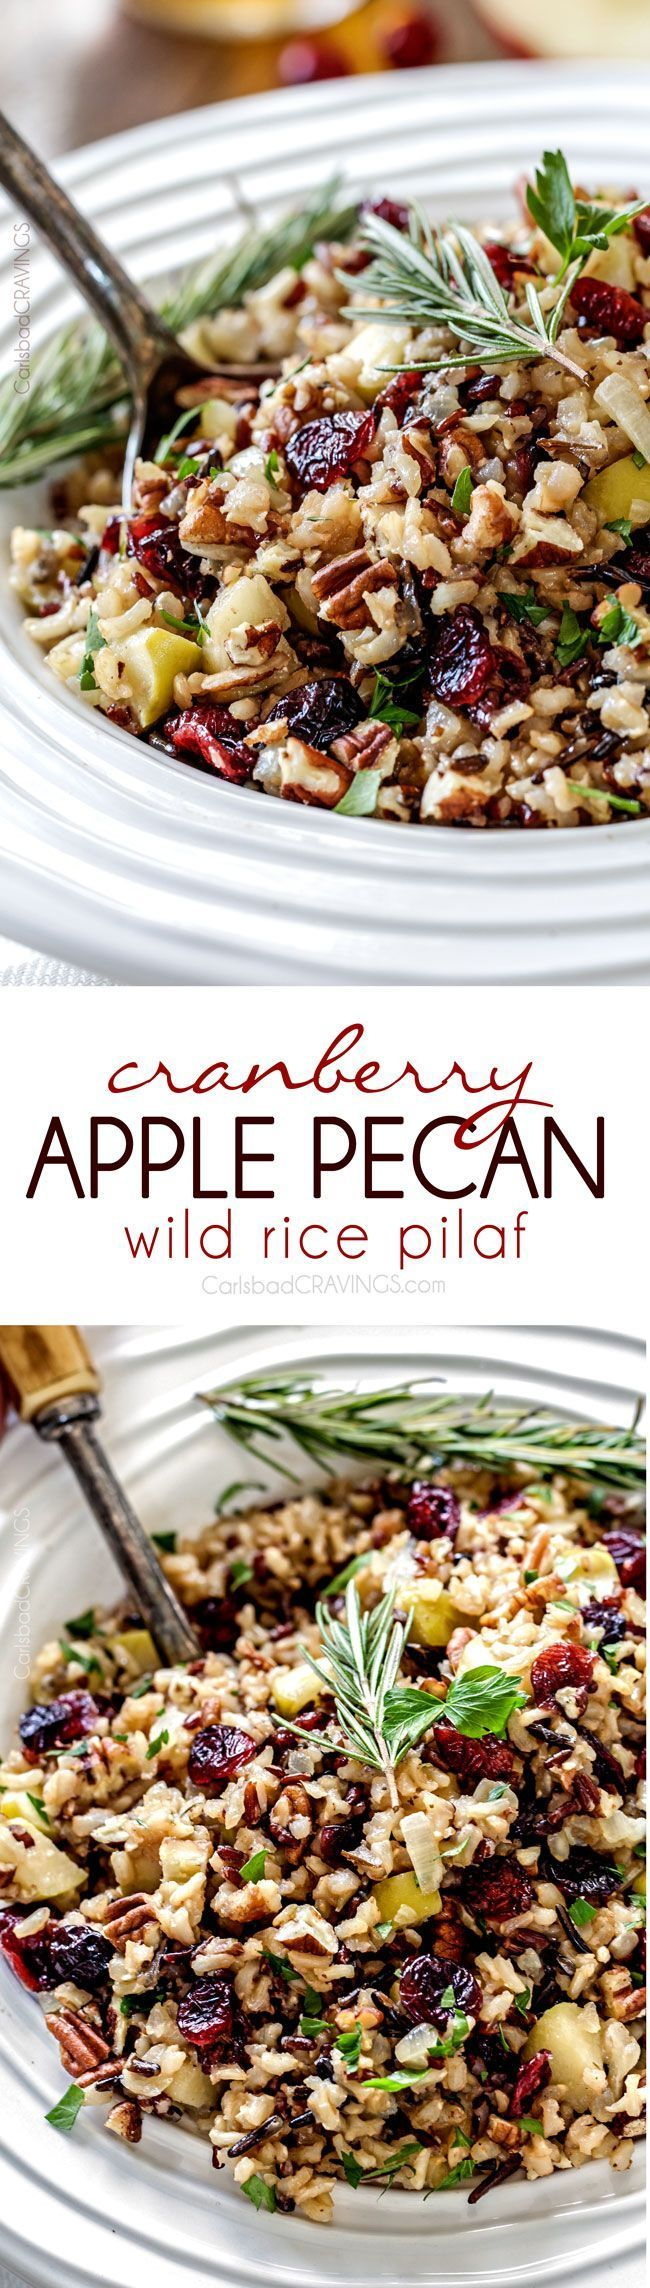 Easy one pot Cranberry Apple Pecan Wild Rice Pilaf simmered in herb seasoned chicken broth and apple juice and riddled with sweet dried cranberries, apples and roasted pecans for an unbelievable savor